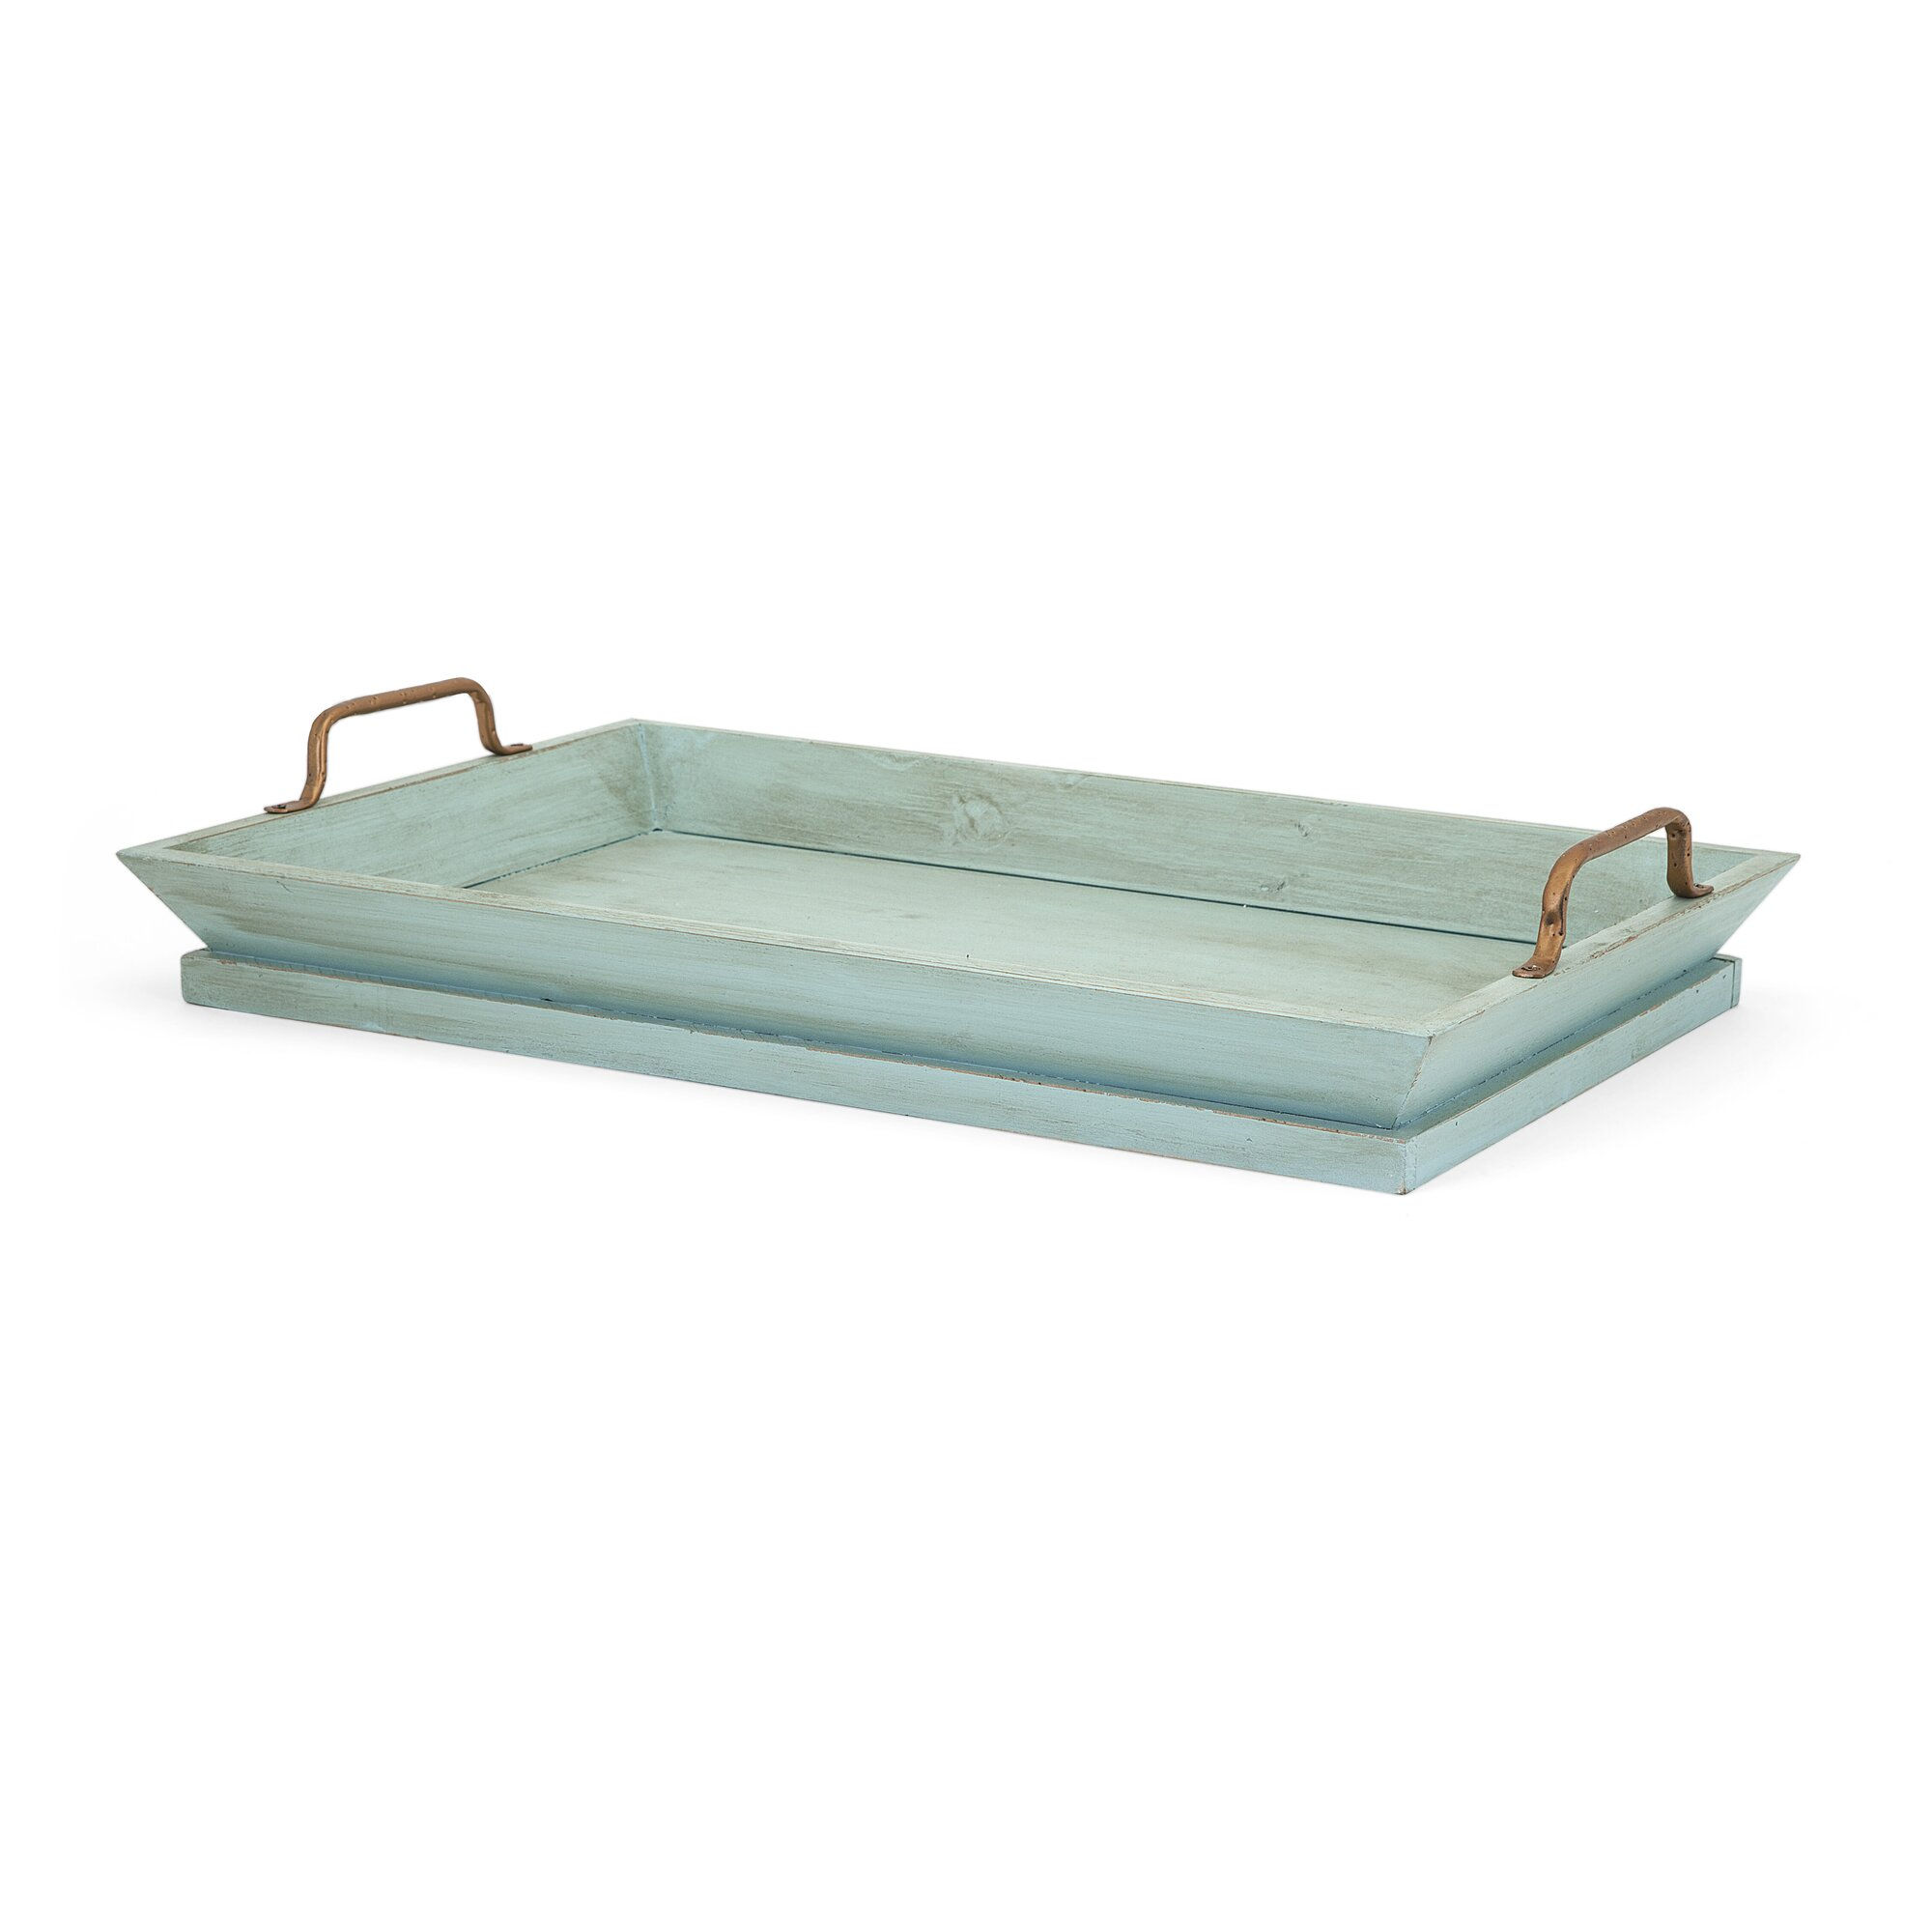 songbird decorative tray - Decorative Tray